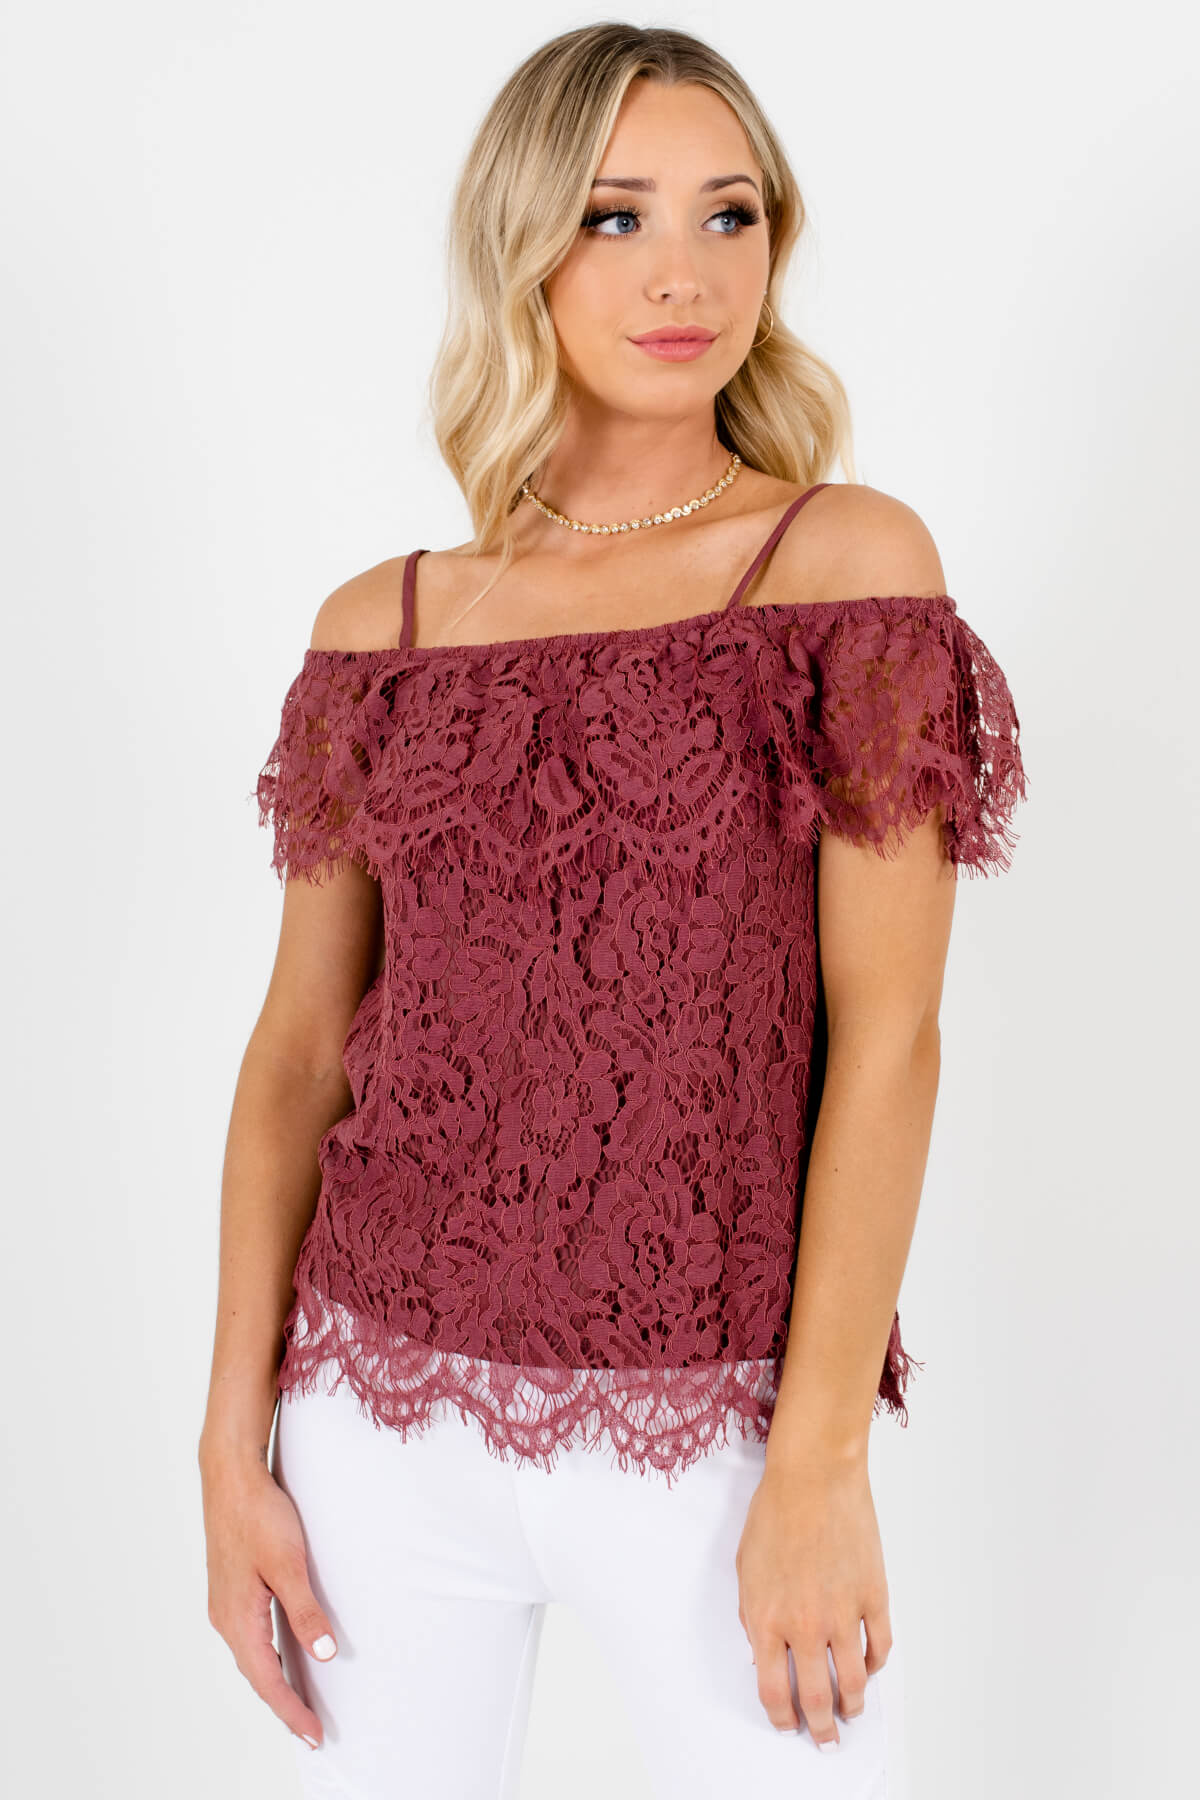 Mauve Purple Cold Shoulder Style Boutique Tops for Women